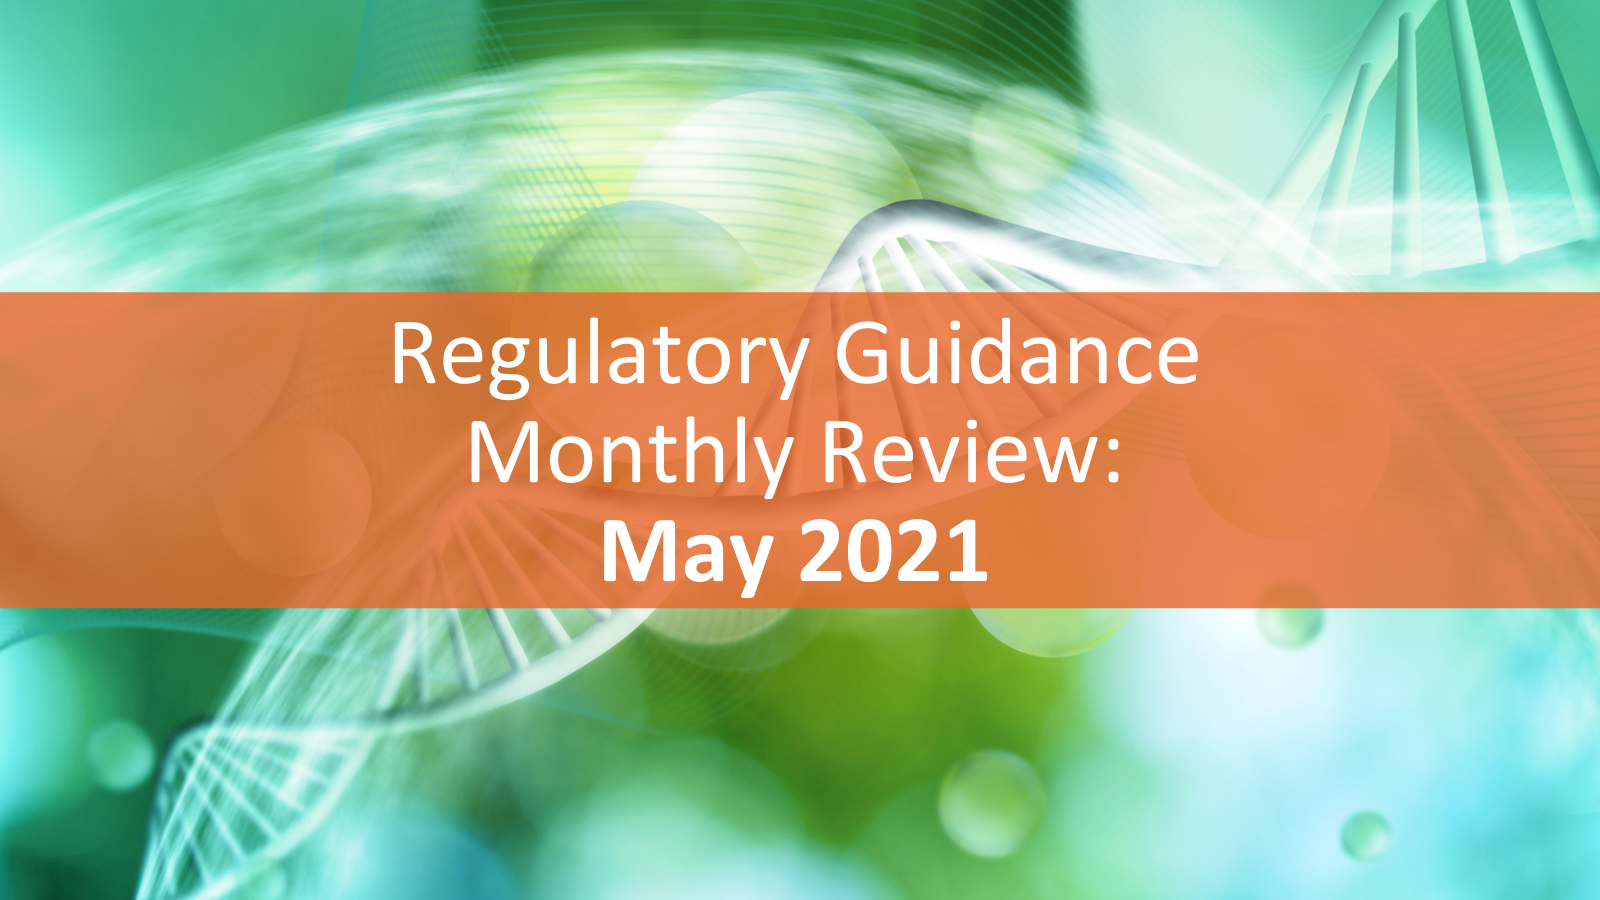 Regulatory Guidance Monthly Review - May 2021